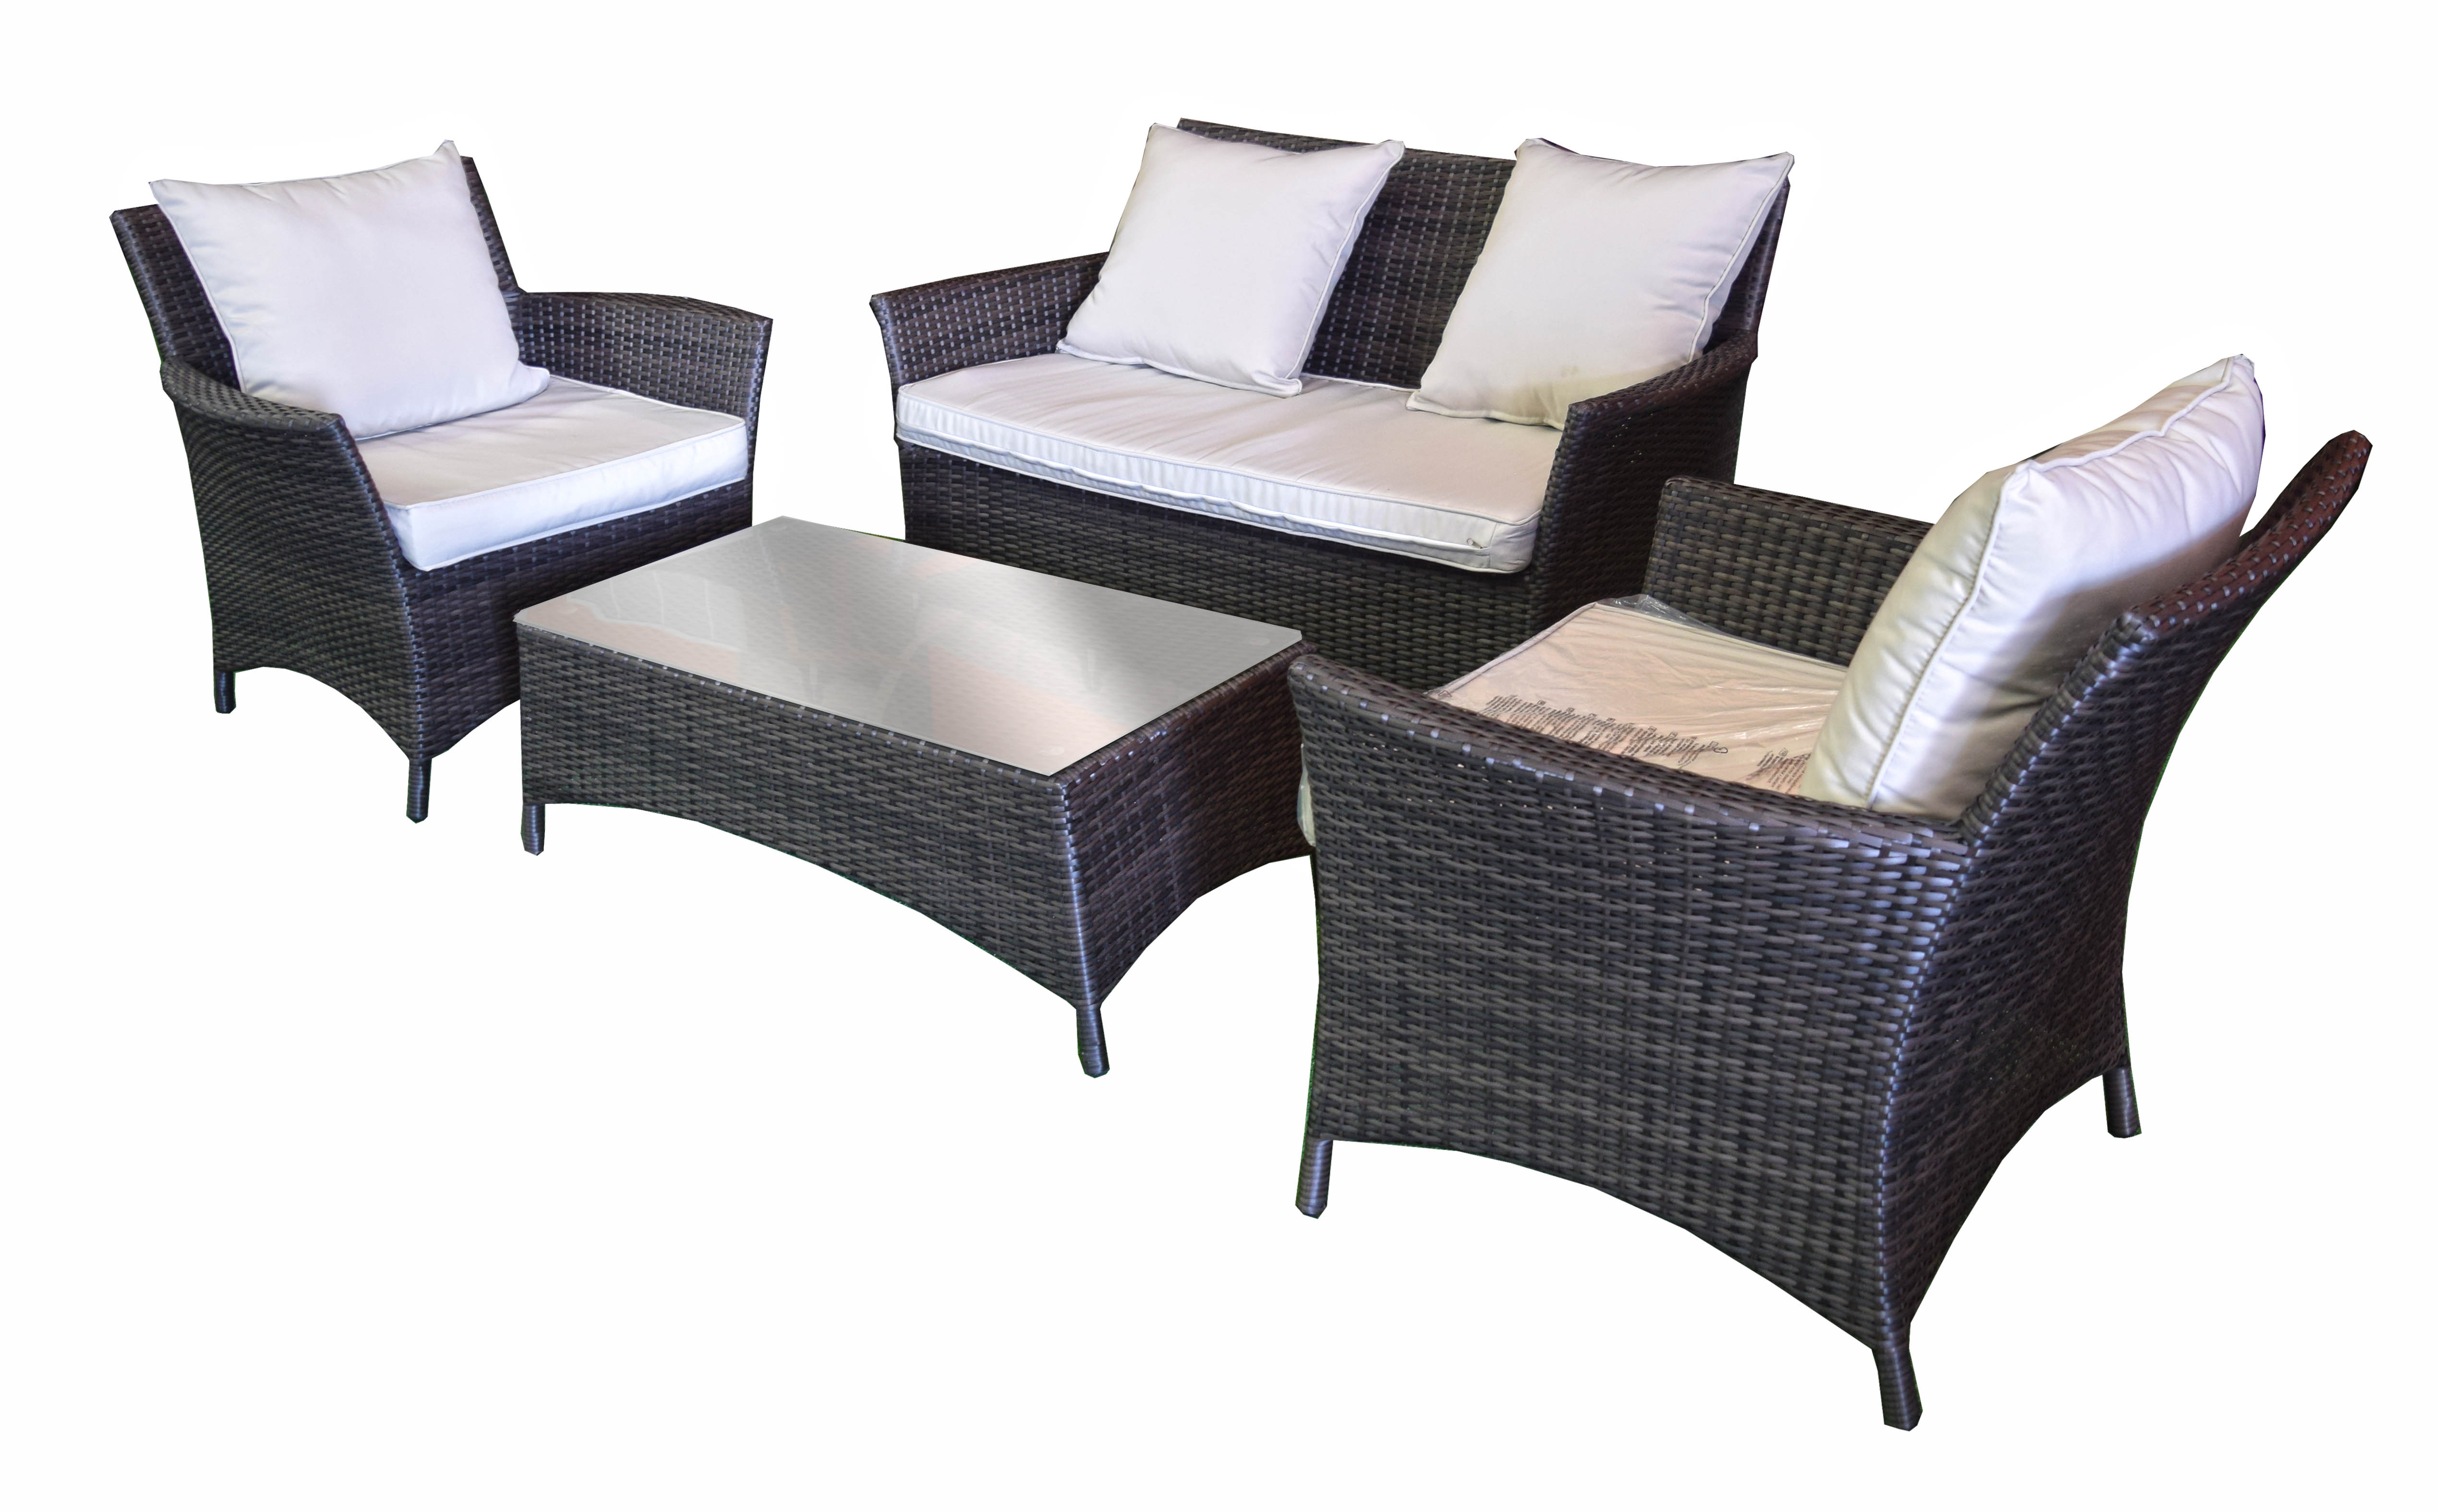 Patio 1 In Trinidad Outdoor Lounge Furniture Outdoor in dimensions 5078 X 3150